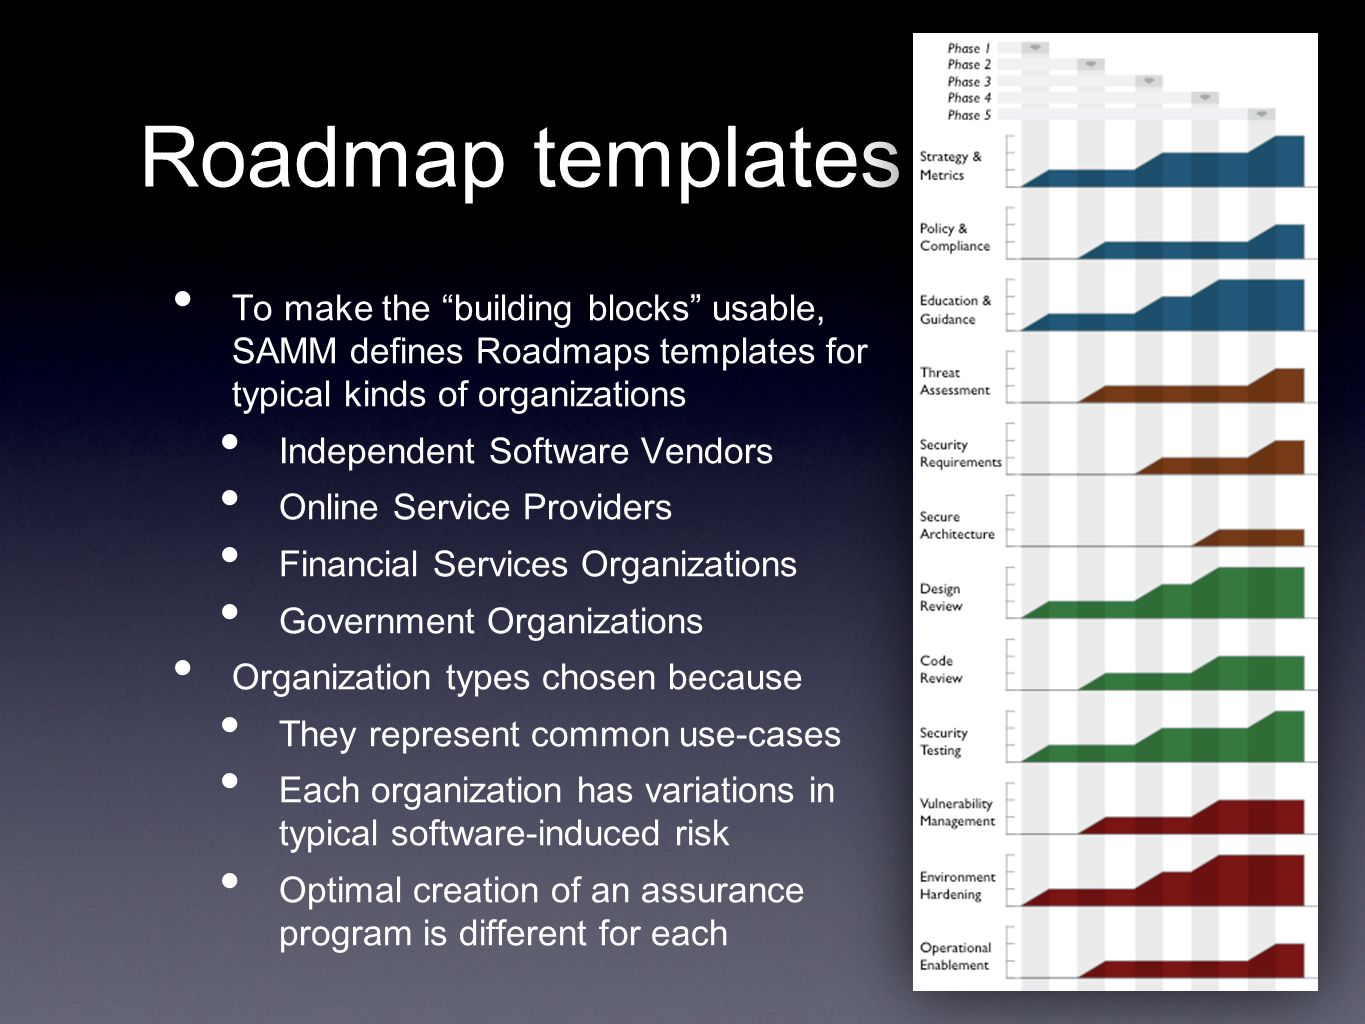 Roadmap templates To make the building blocks usable, SAMM defines Roadmaps templates for typical kinds of organizations.